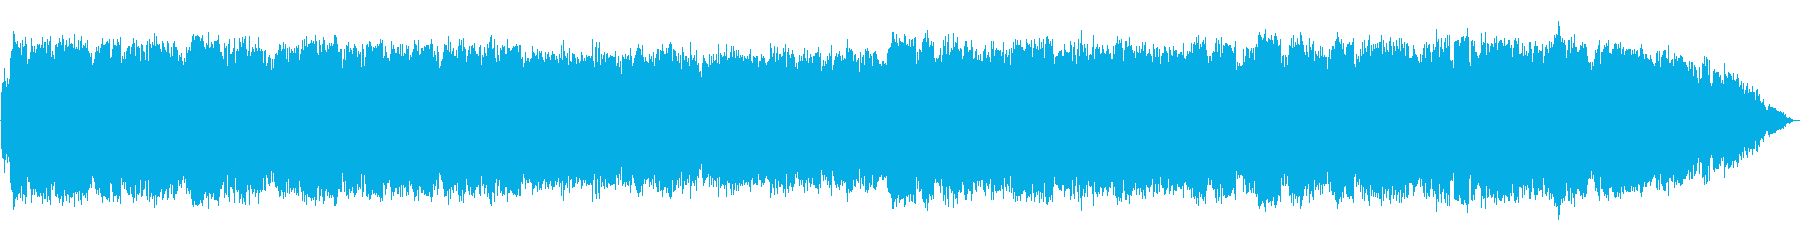 Calming whistle healing music's reproduced waveform